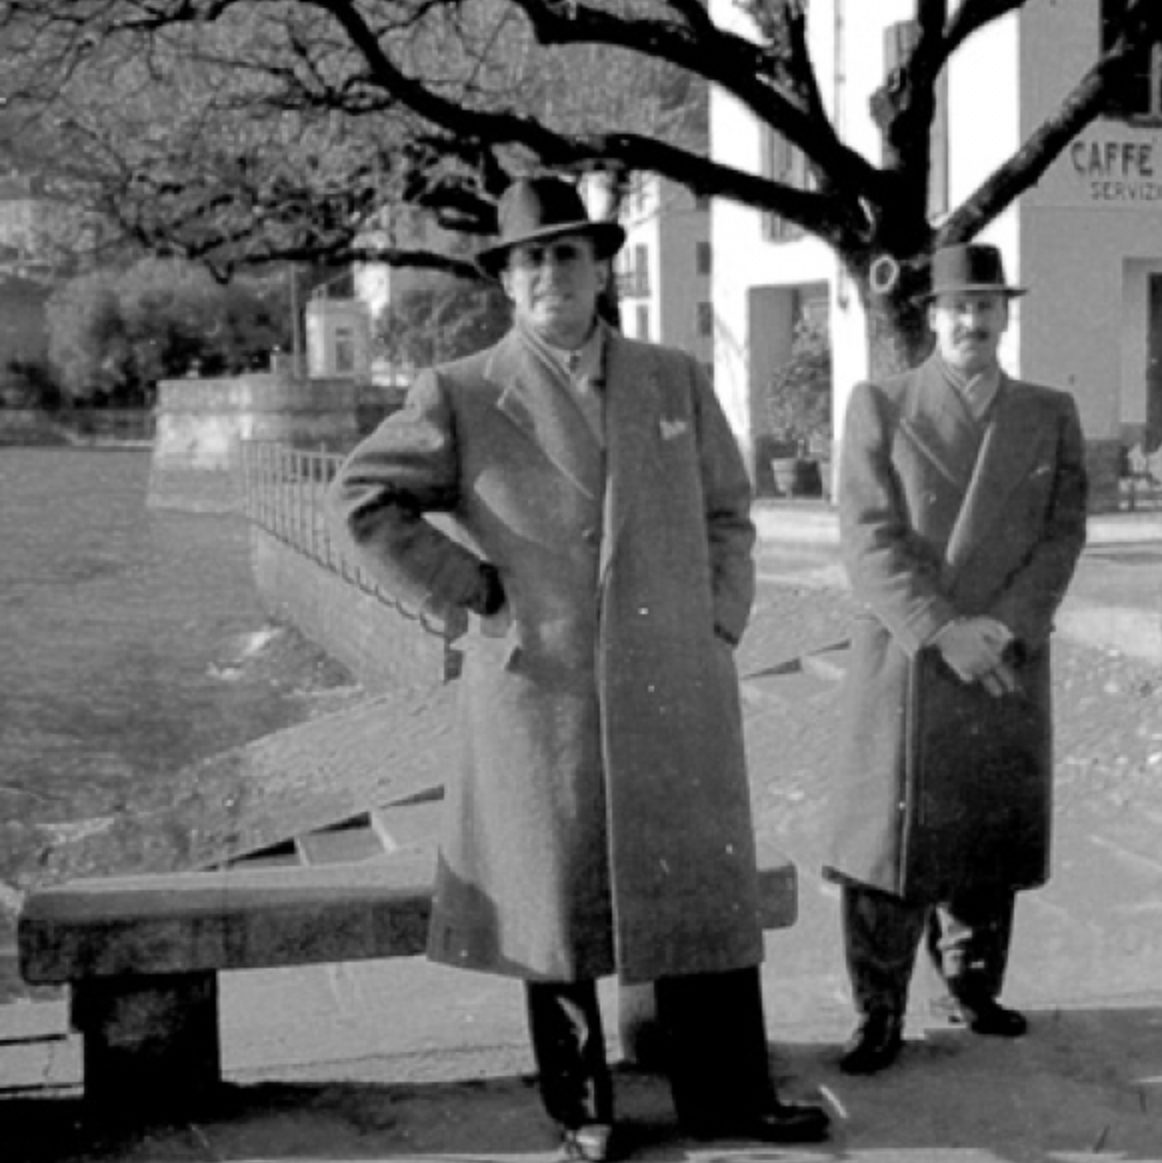 Photograph of architects Mario Asnago and Claudio Vender wearing coats outside and looking at the camera